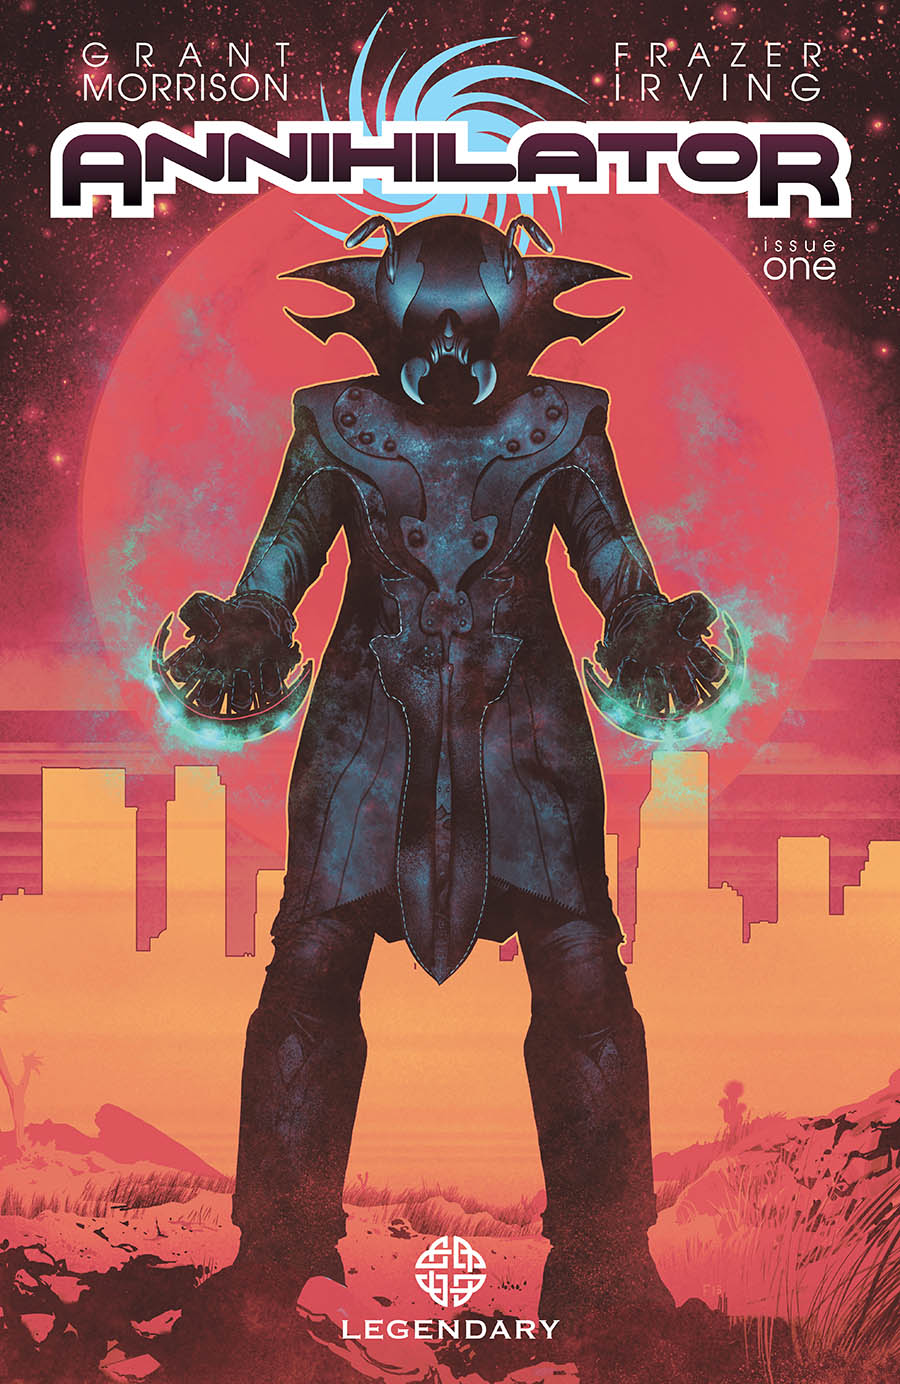 ANNIHILATOR is Grant Morrison's most coherent work in years. Frazier Irving's lush art also dazzles here.